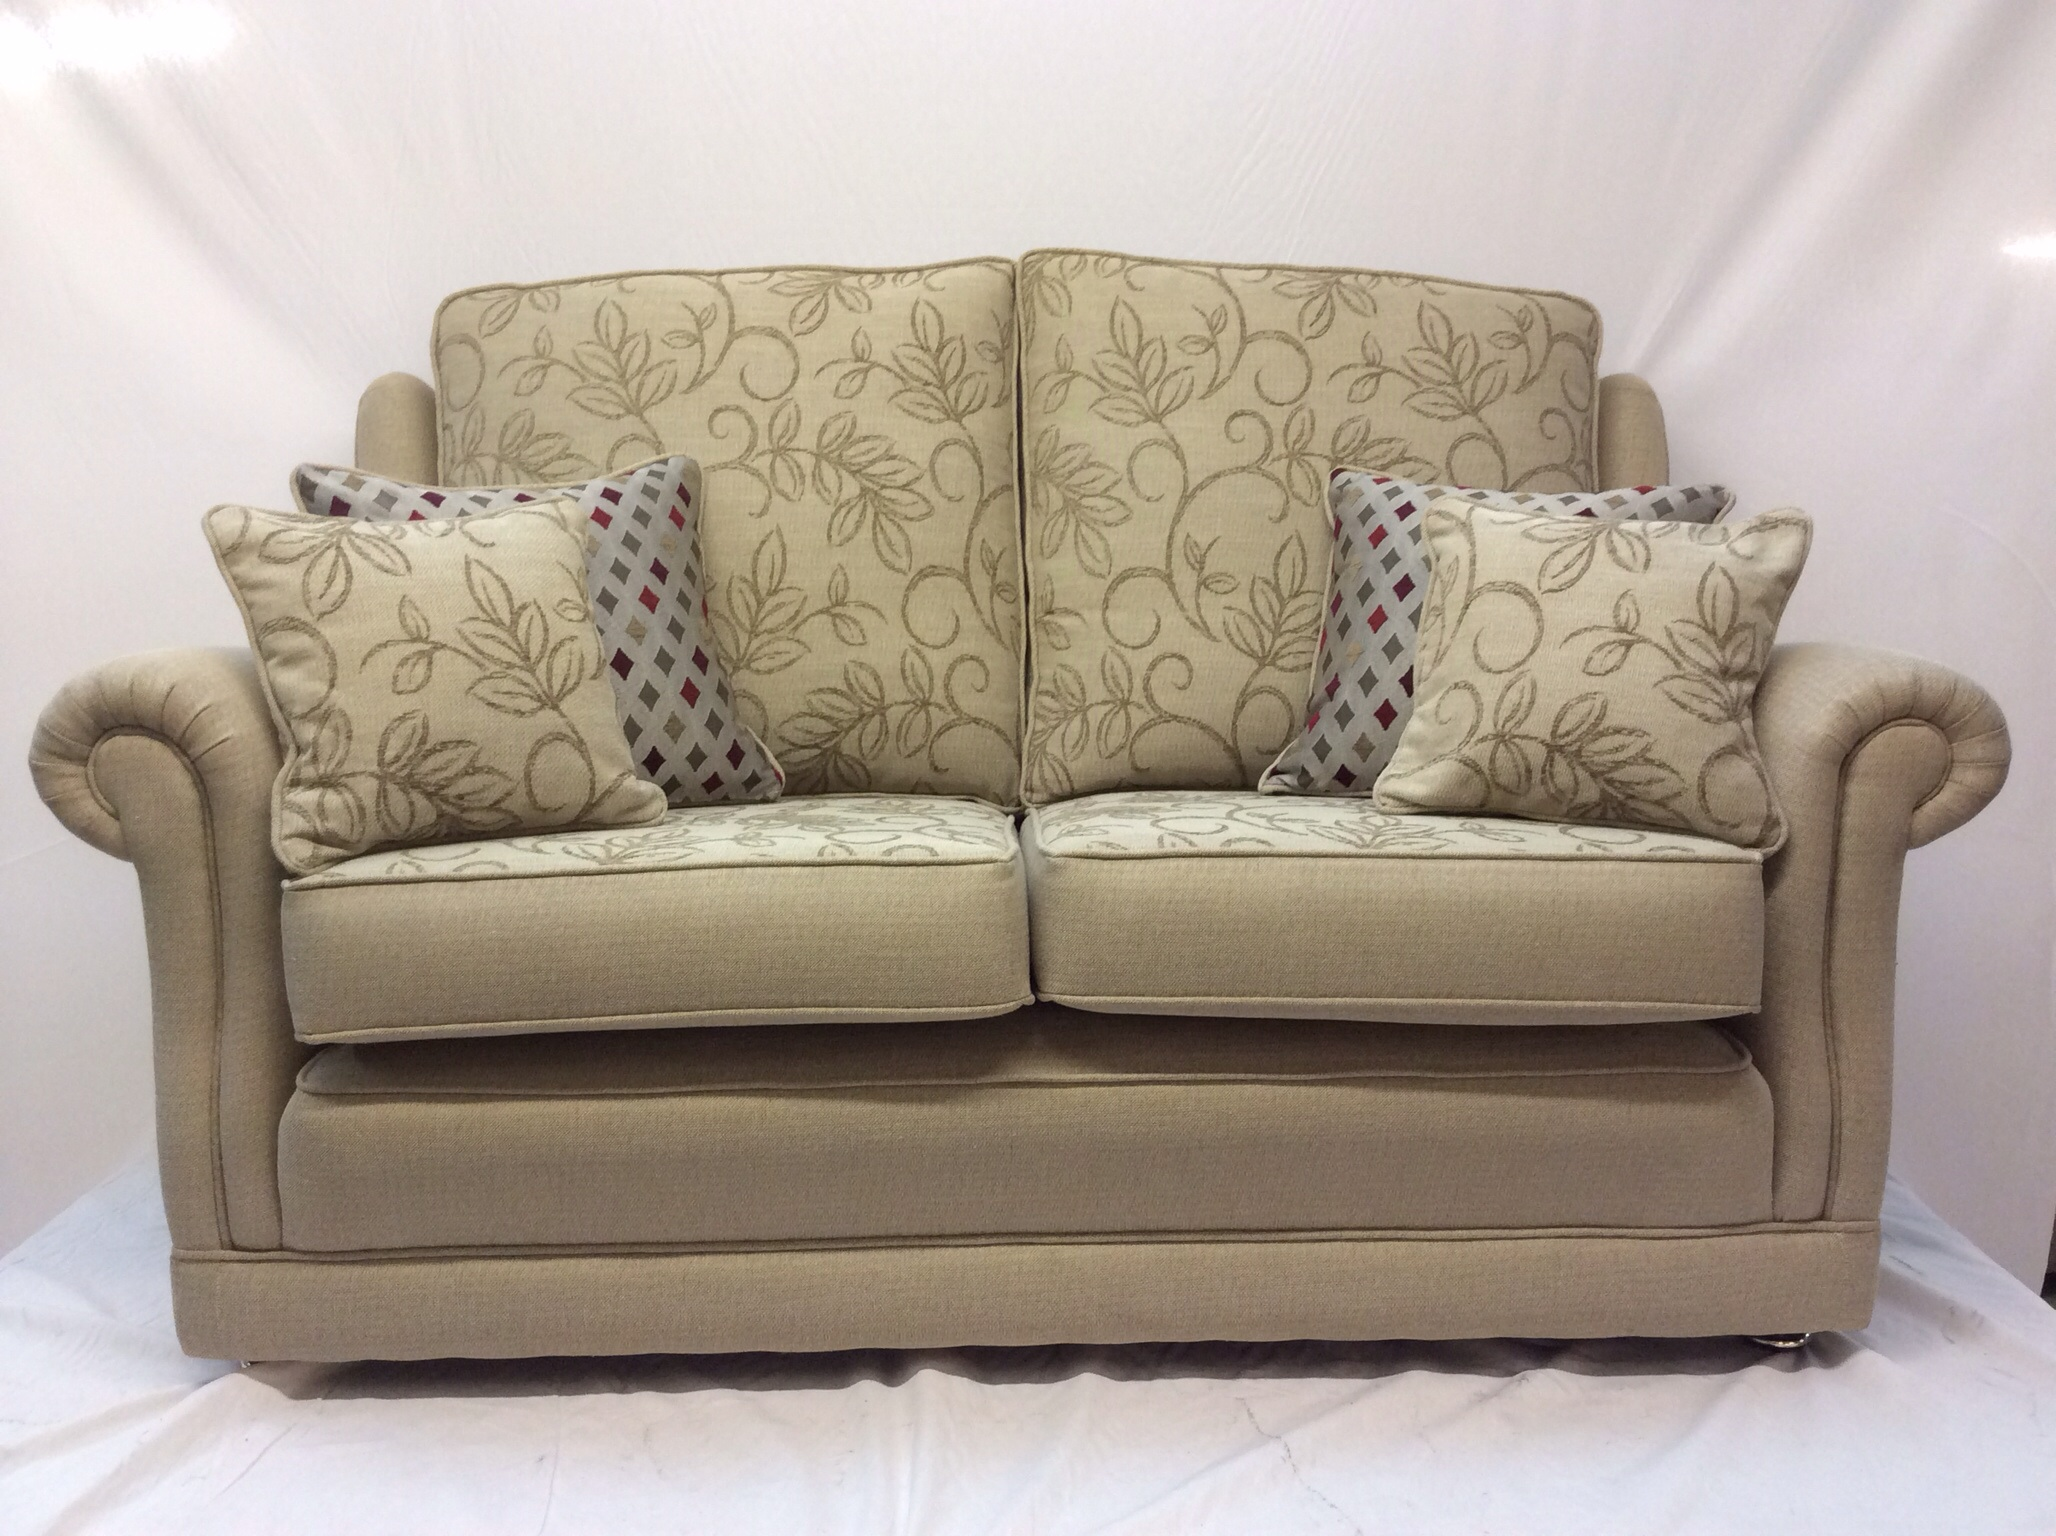 Sofas And Chairs At The Range Sofa & Chair Designs – Ralvern Upholstery | Bespoke Sofas